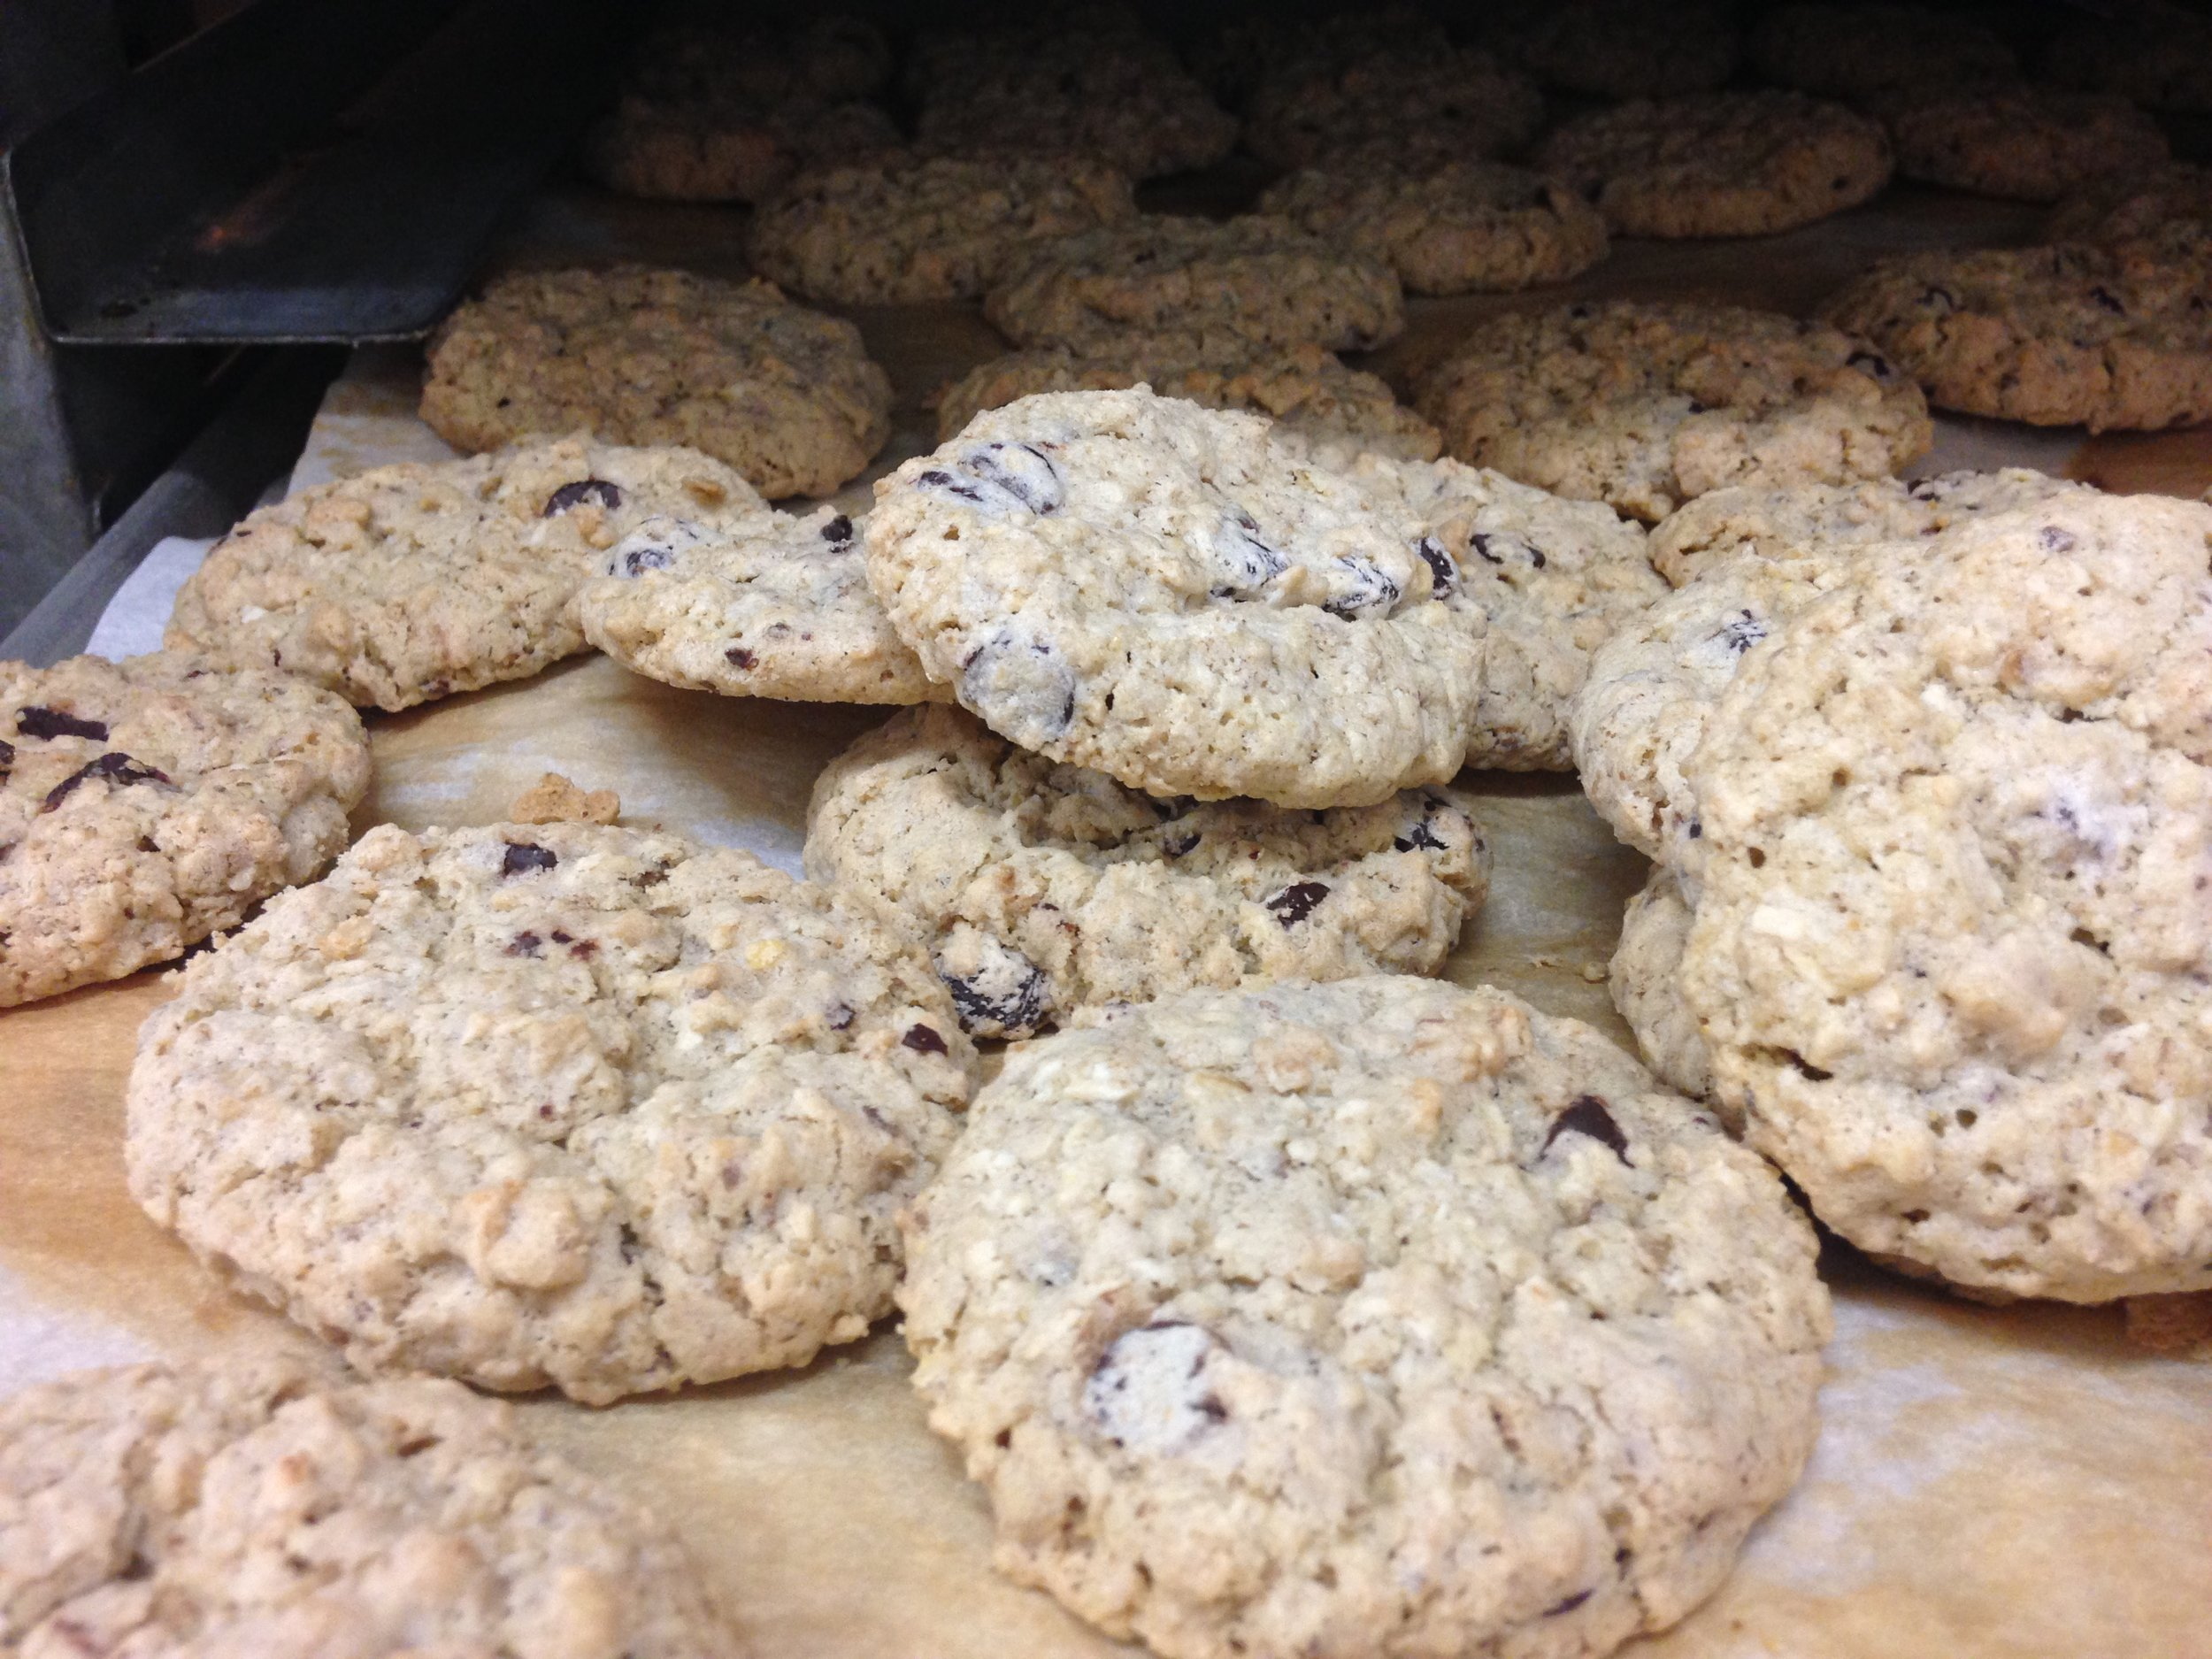 We Make ItYou Bake It - Cookies: Ginger, Oat, Chocolate Chip, Vanilla ShortbreadCroissantGluten Free Bread & BunsPie Crust: speltPizza Crust: spelt or wheat - dough rounds or flatsSavoury RollsVeggie Burger and more